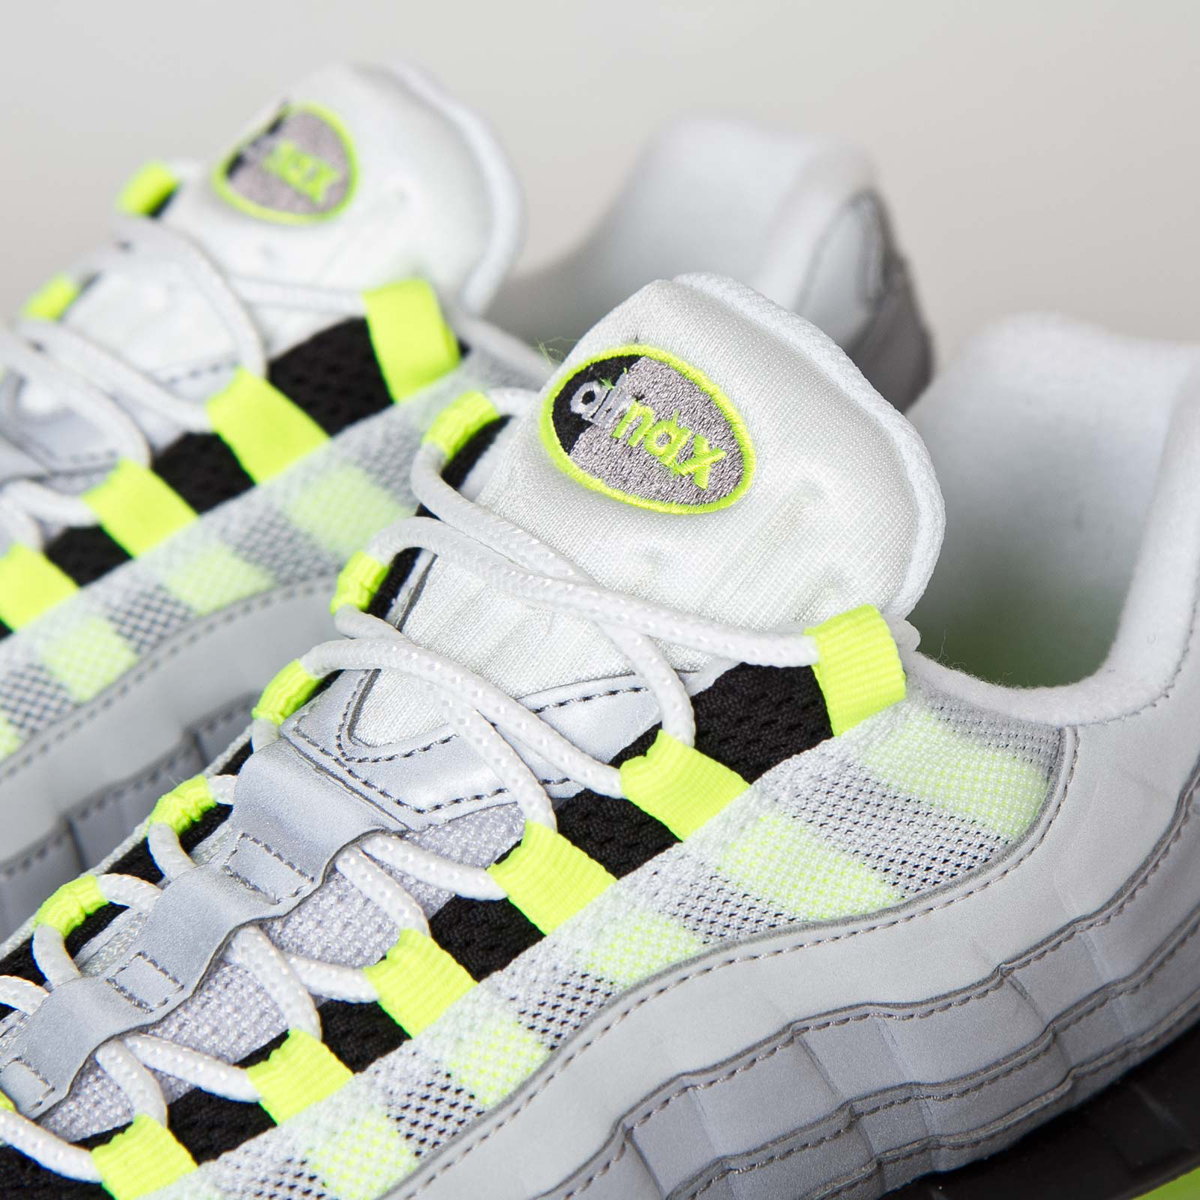 nike 39 s fully reflective 39 neon 39 air max 95 just released sole collector. Black Bedroom Furniture Sets. Home Design Ideas